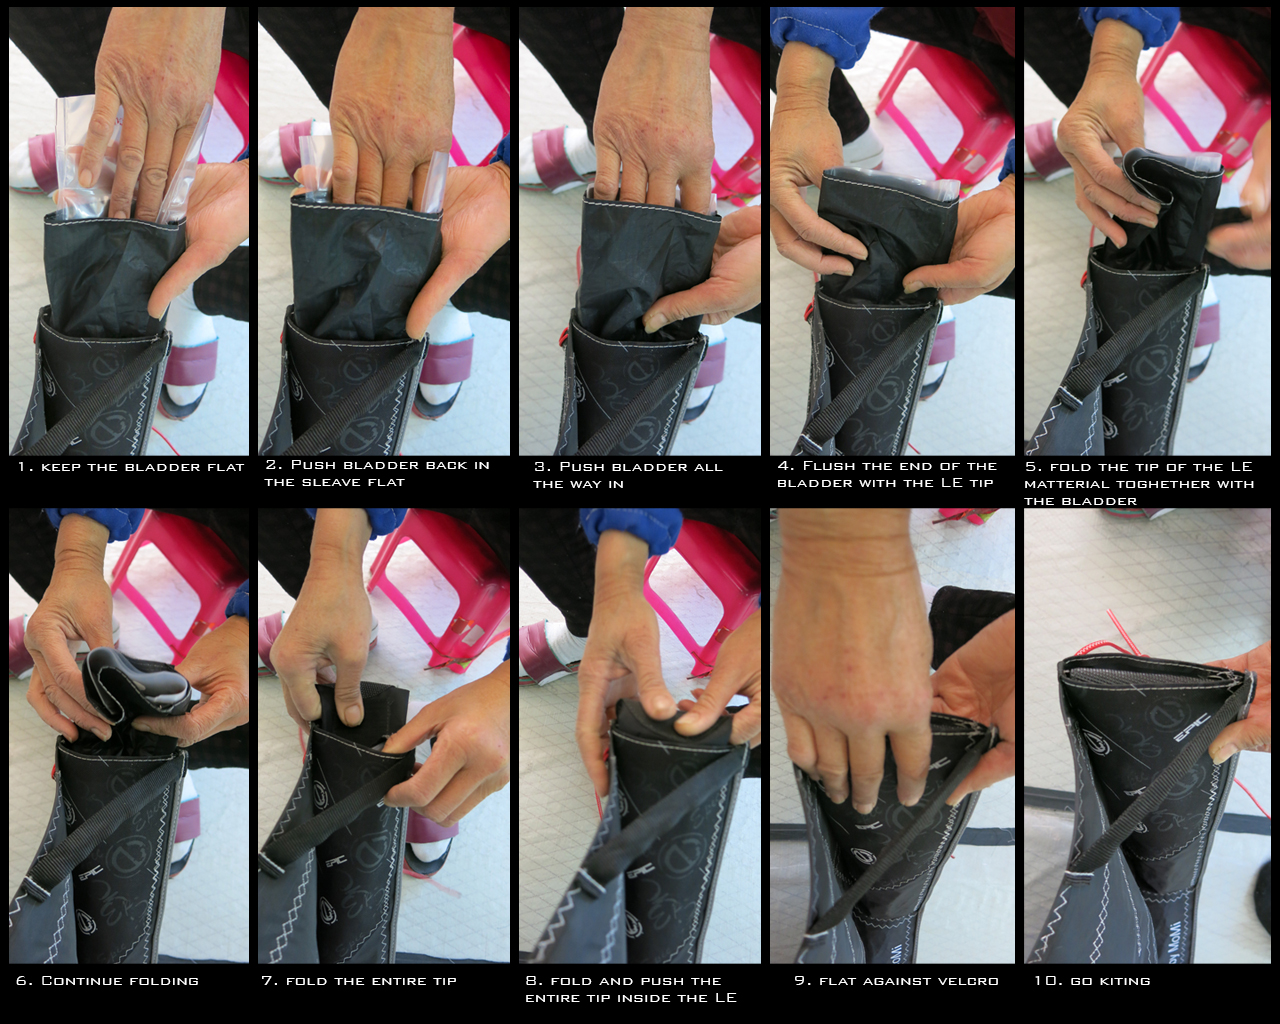 HOW TO FOLD THE TIP OF A LE OR STRUT BLADDER.jpg